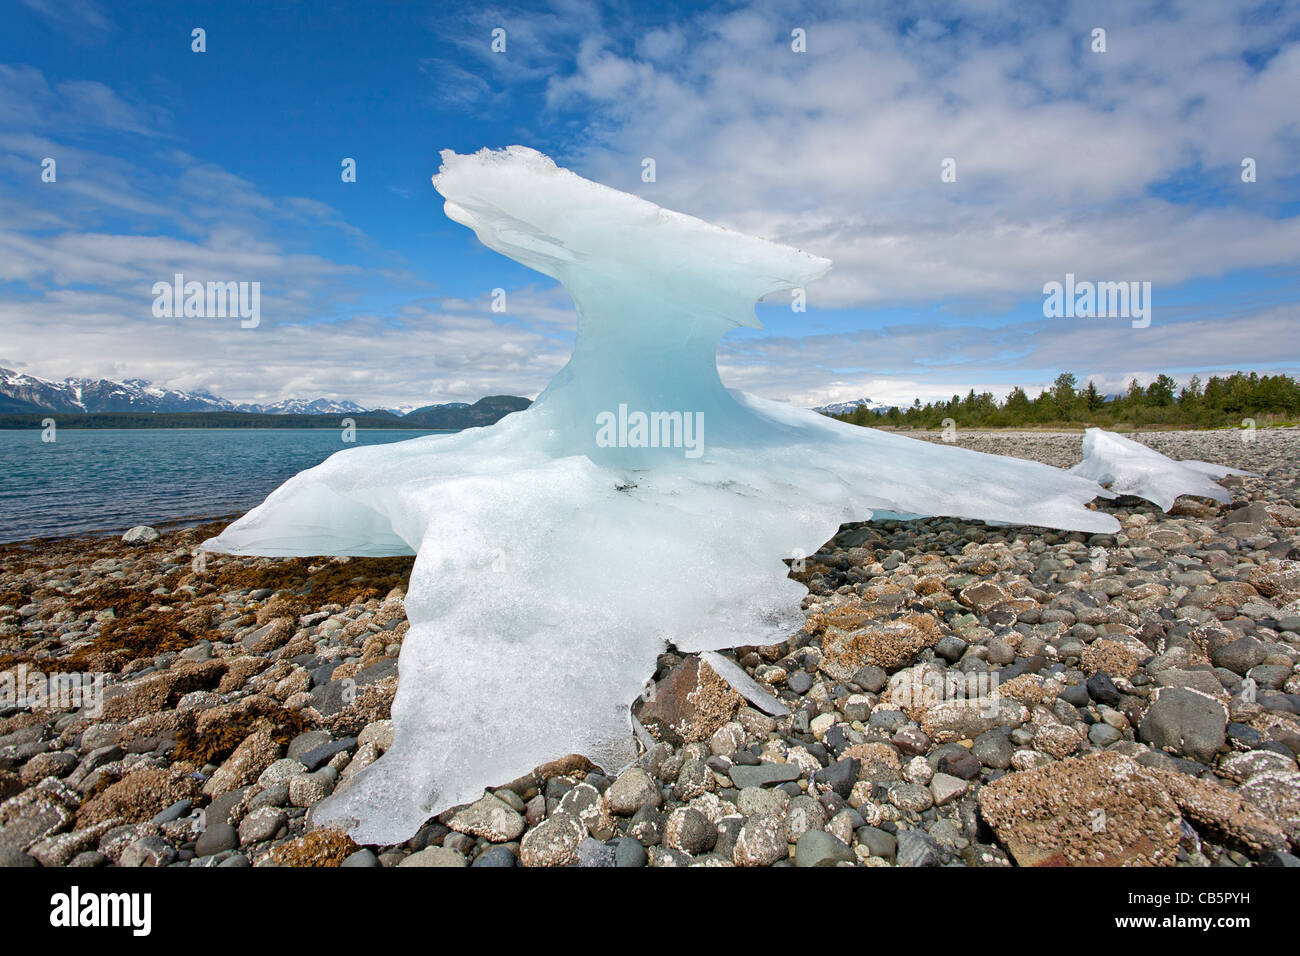 Iceberg trapped on the shore at low tide. Muir Inlet. Glacier Bay. Alaska. USA - Stock Image